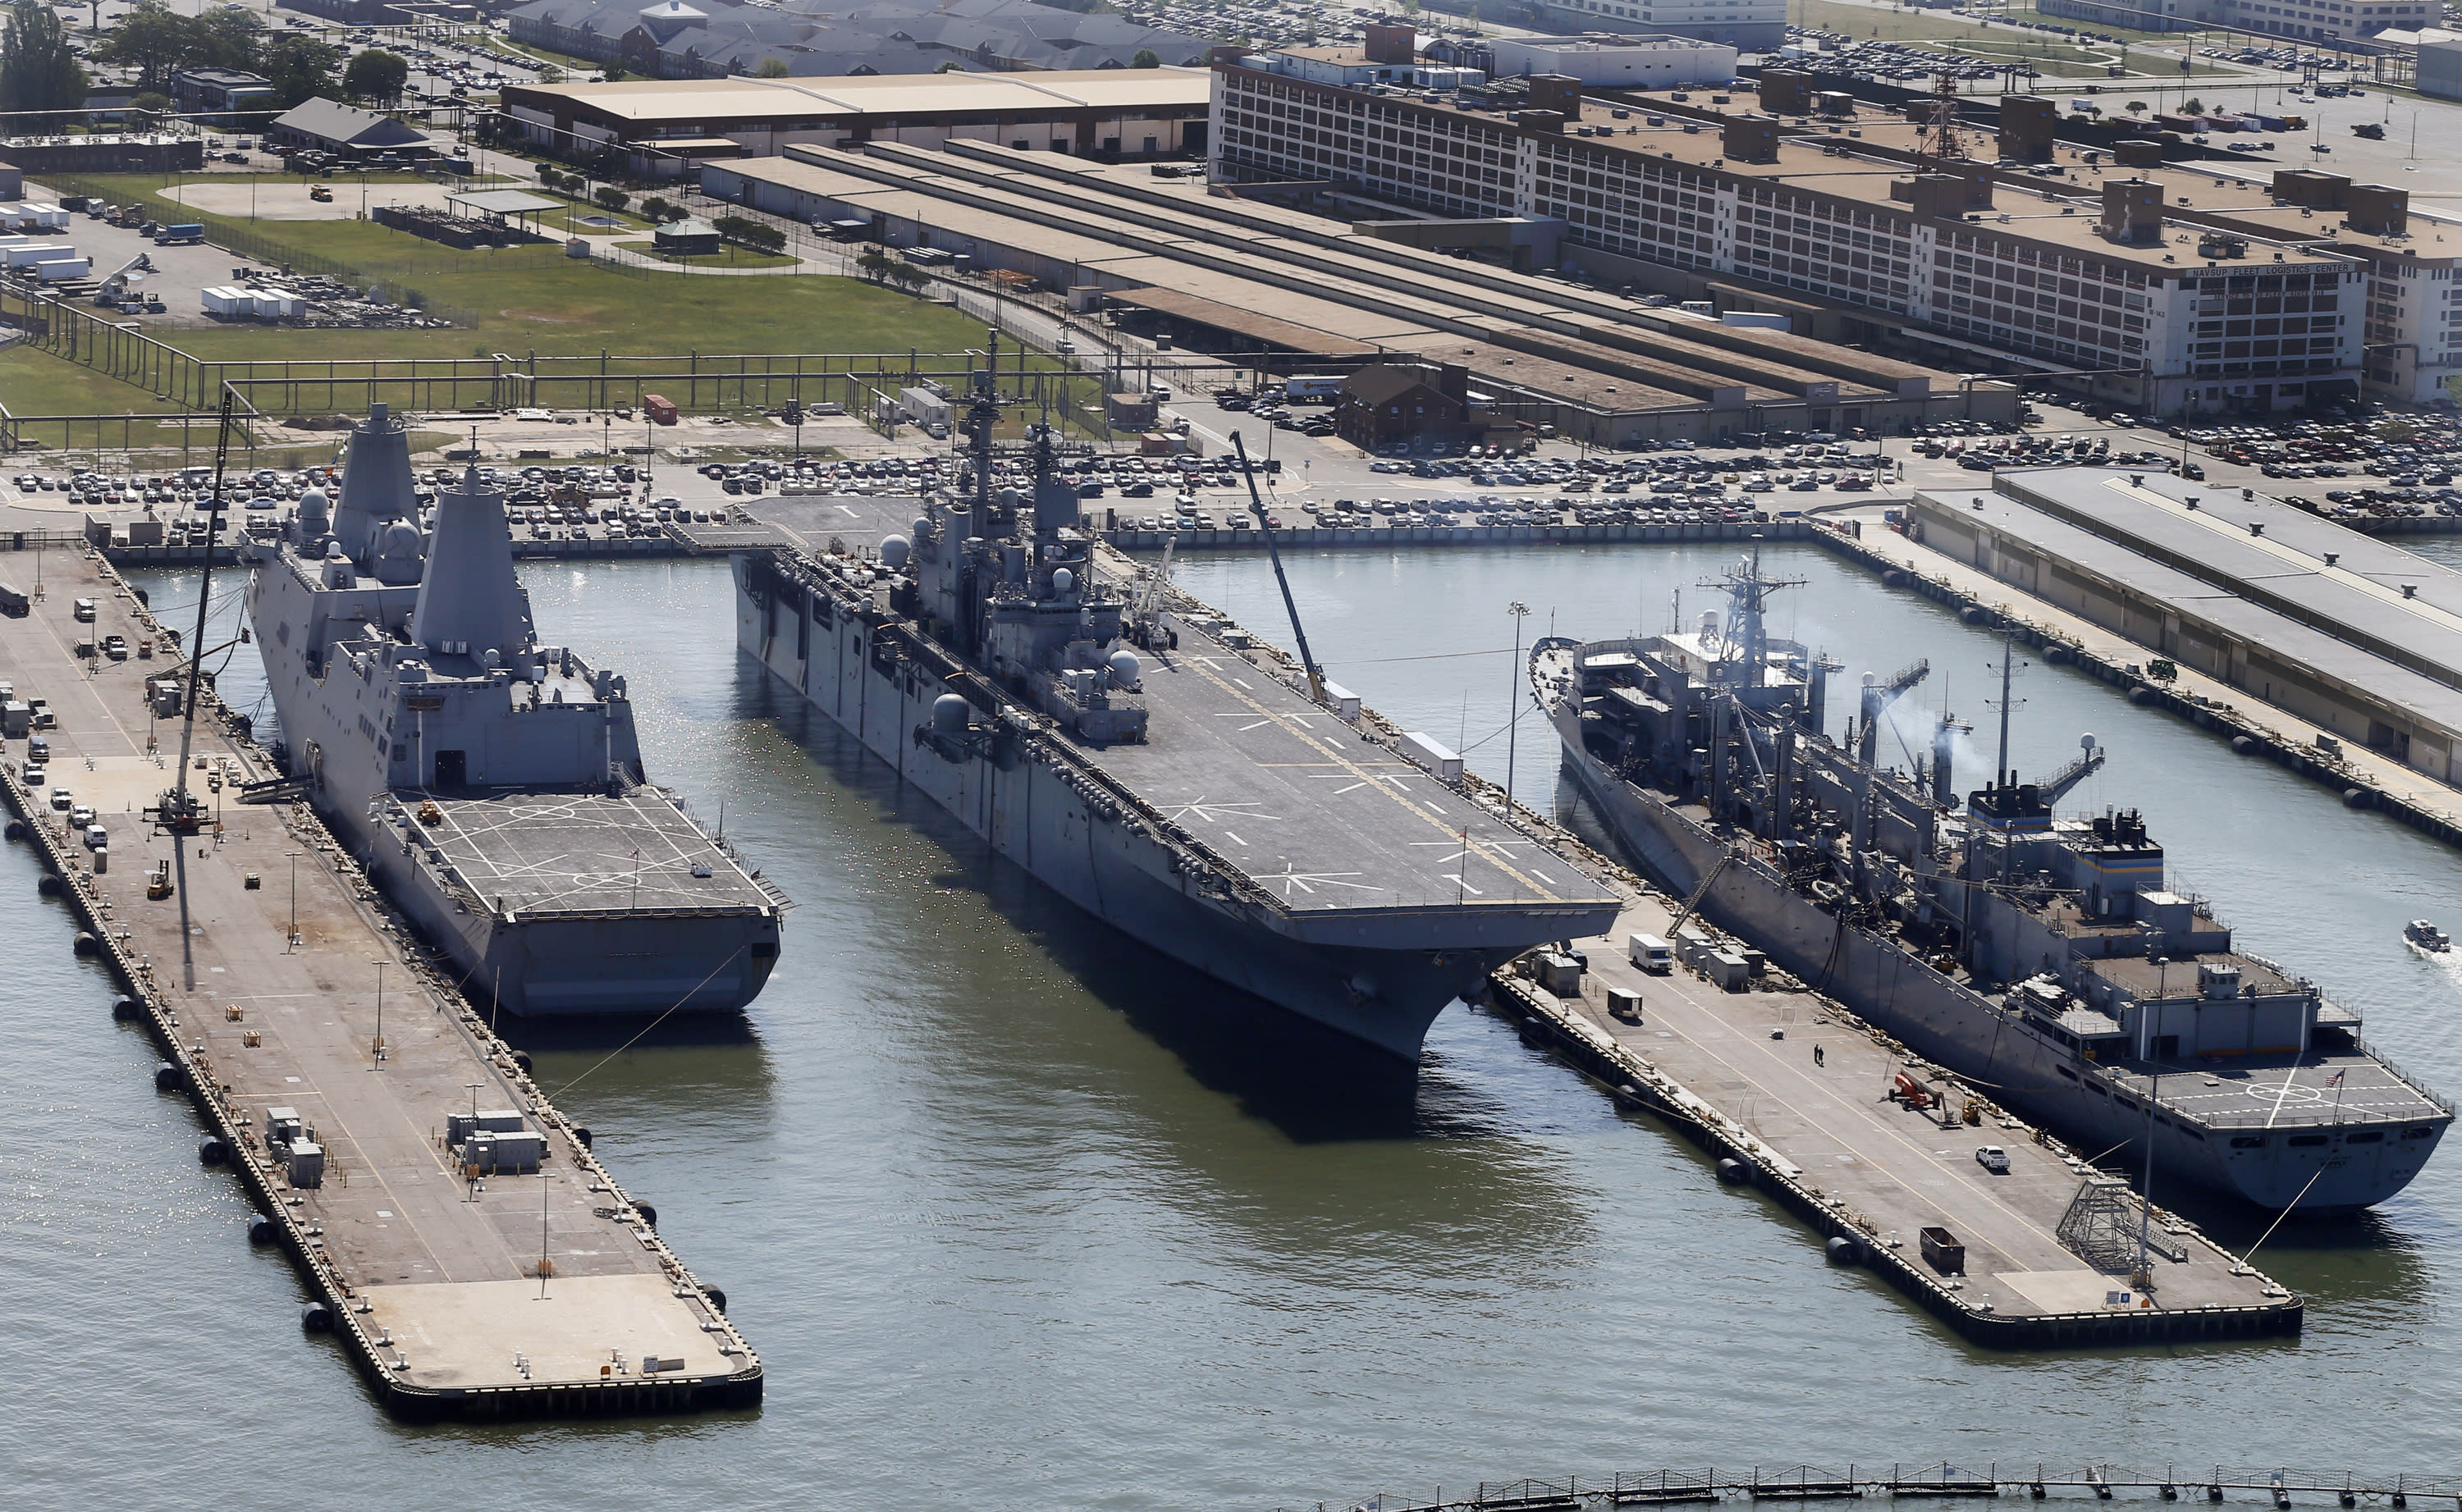 FILE - In this April 27, 2016, file photo, the amphibious assault ship USS Wasp (LHD-1), center, sits pier side along with support ships at Naval Station Norfolk in Norfolk, Va. The U.S. Navy amphibious assault ship USS Wasp arrived in Subic Bay, the Philippines, Saturday, March 30, 2019, with its complement of Marines and F-35 Lightning II fighter jets in preparation for joint exercises with the Philippines.(AP Photo/Steve Helber, File)